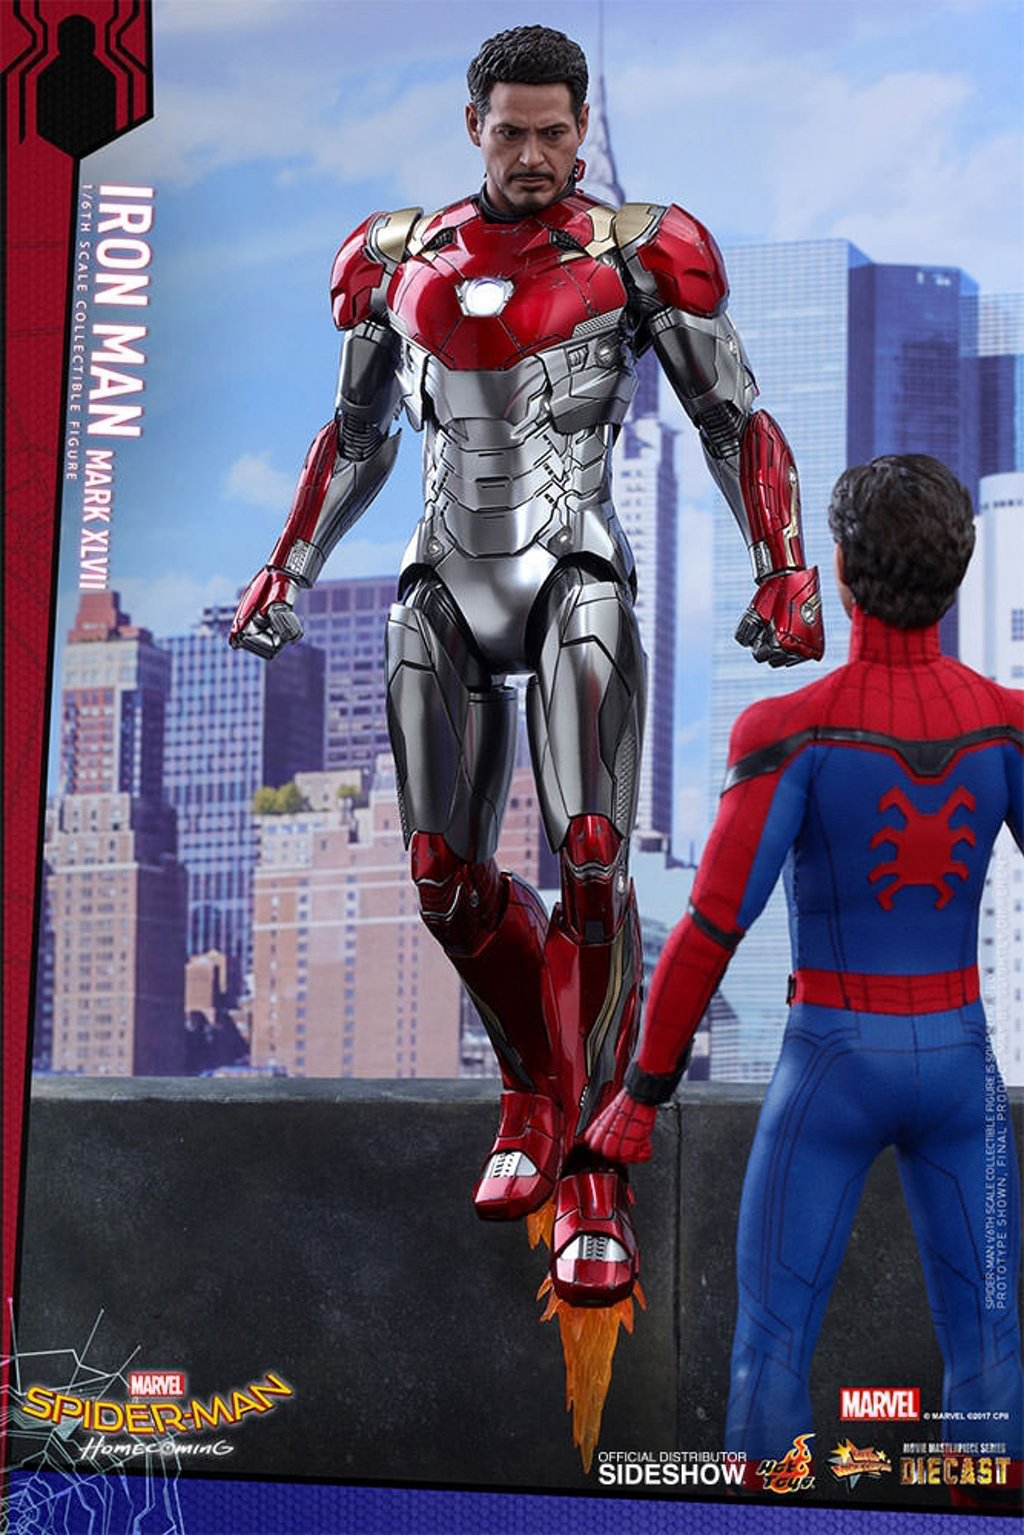 Hot Toys Figure Offers A Detailed Overview Of Iron Man's Mark XLVII As Two New Spider-Man: Homecoming Promos Scurry Online